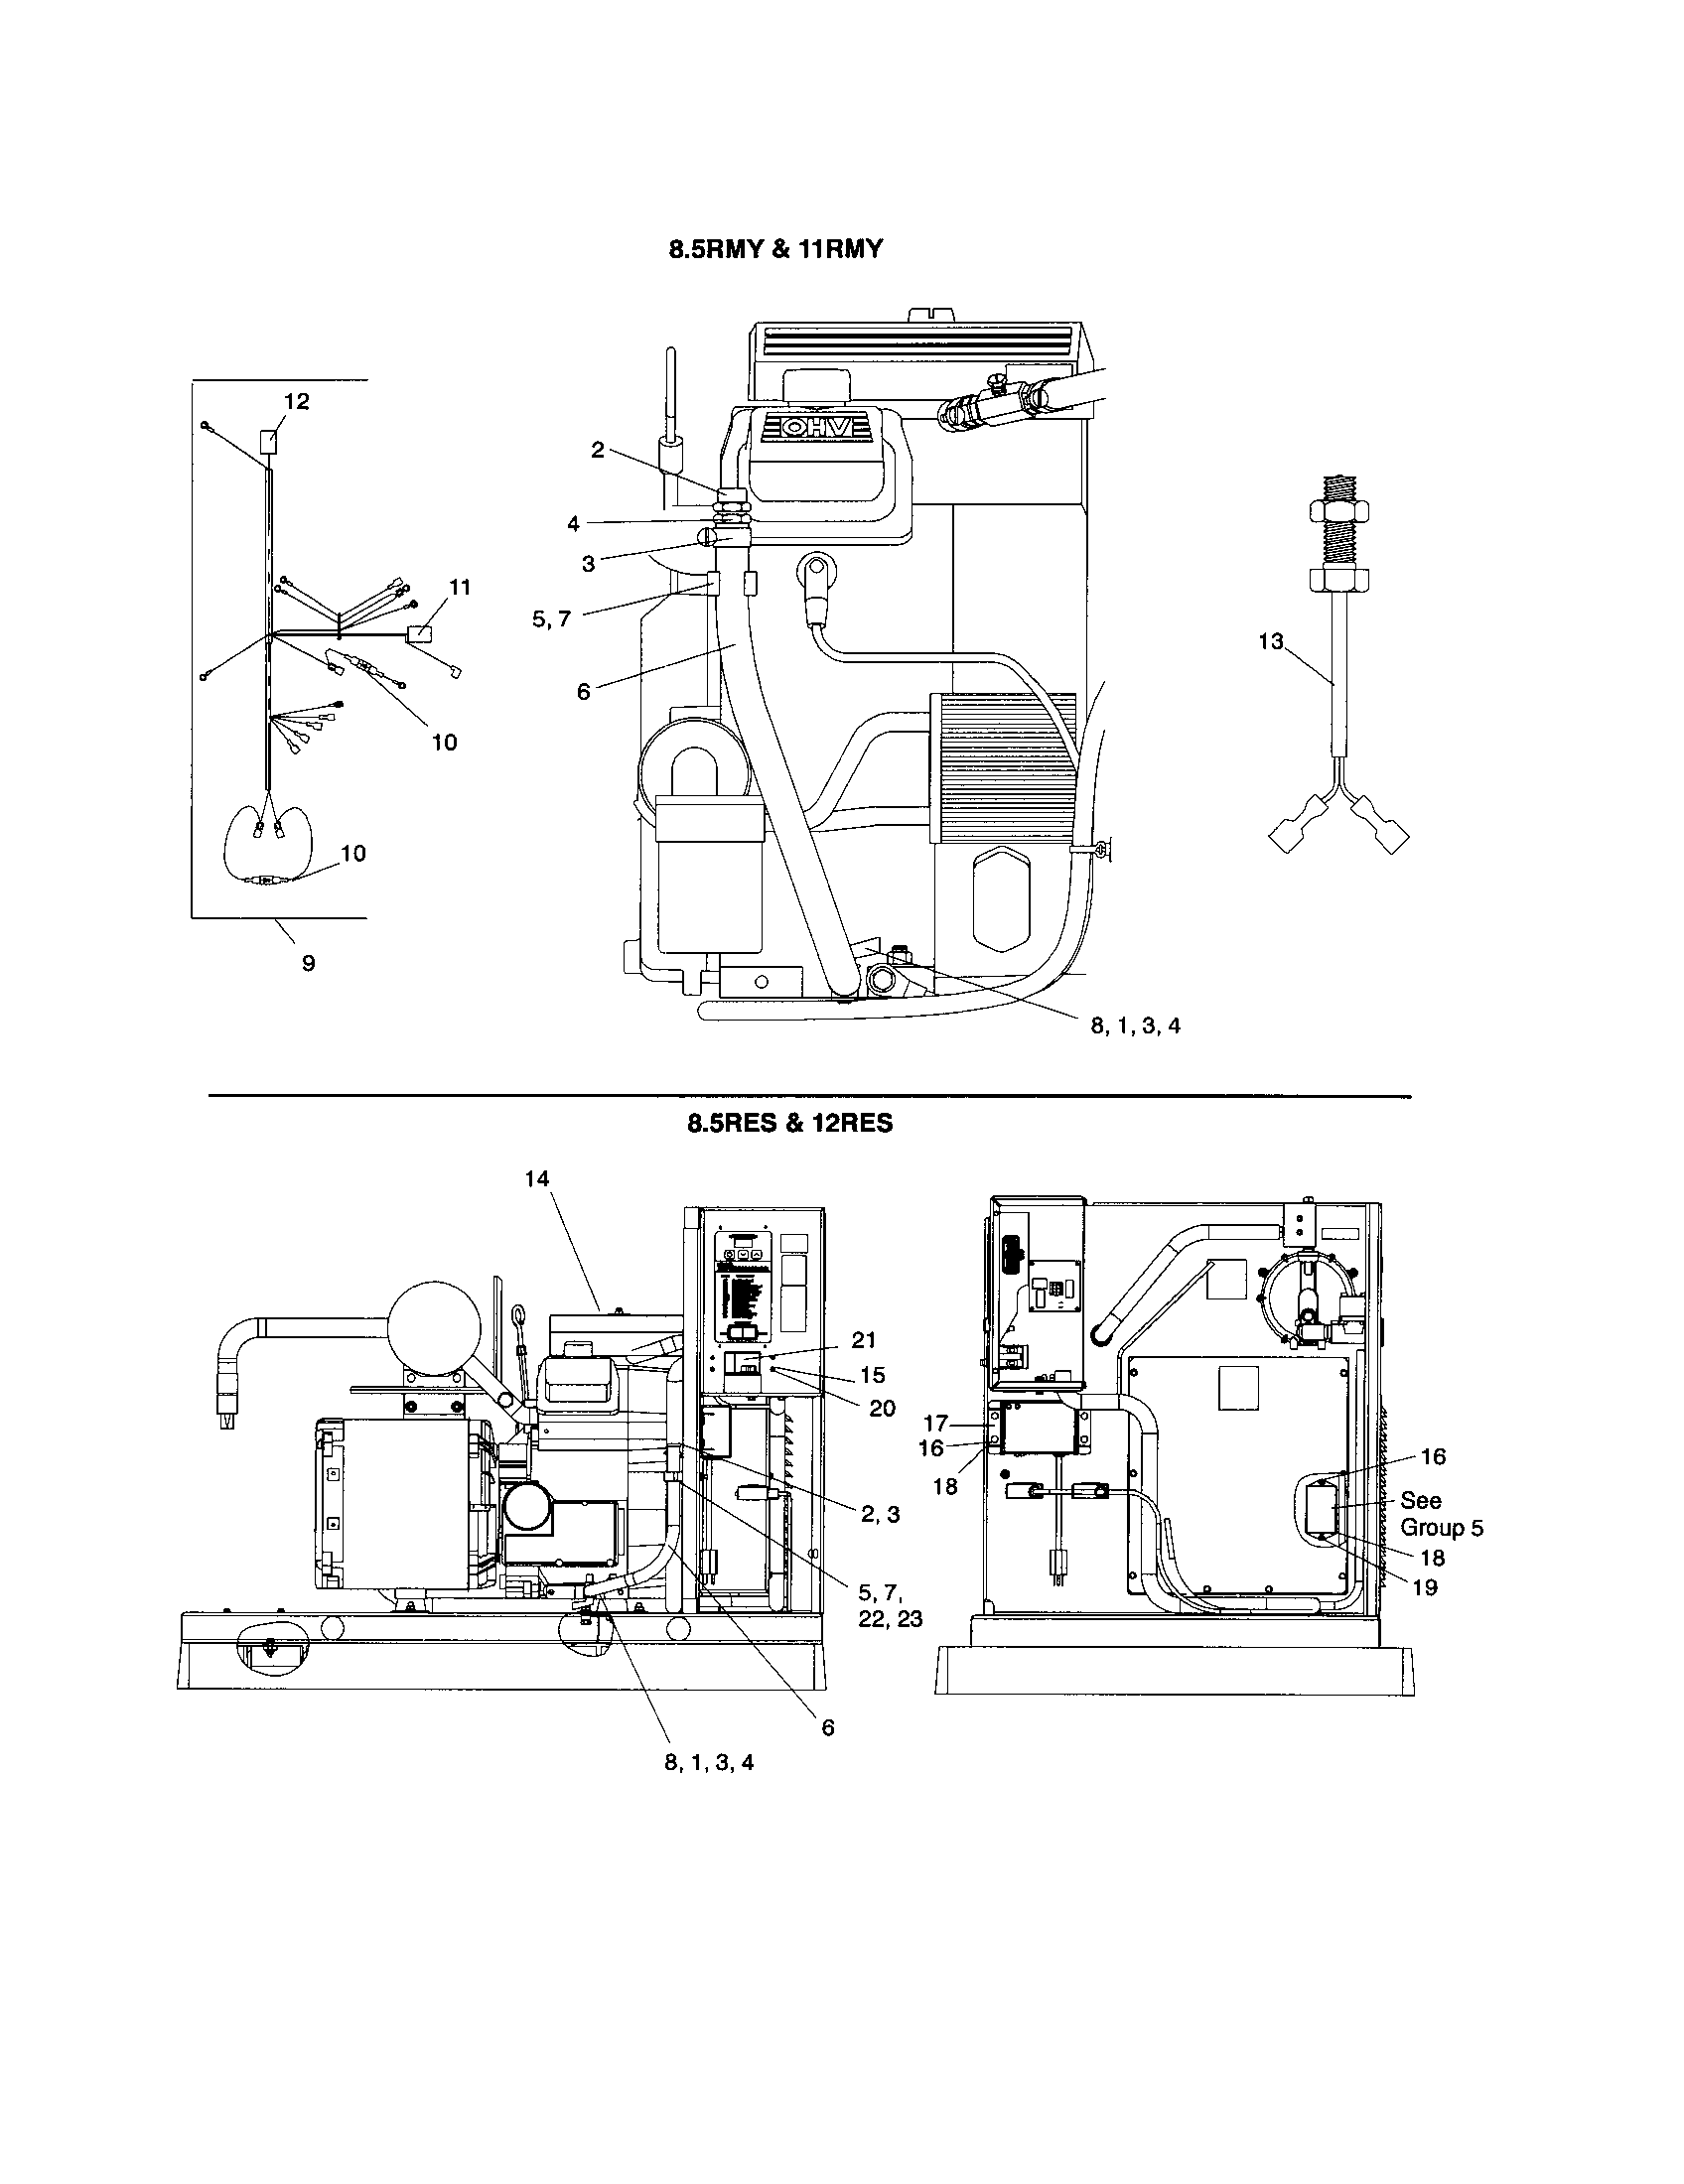 ENGINE Diagram & Parts List for Model 8512res Kohler-Parts